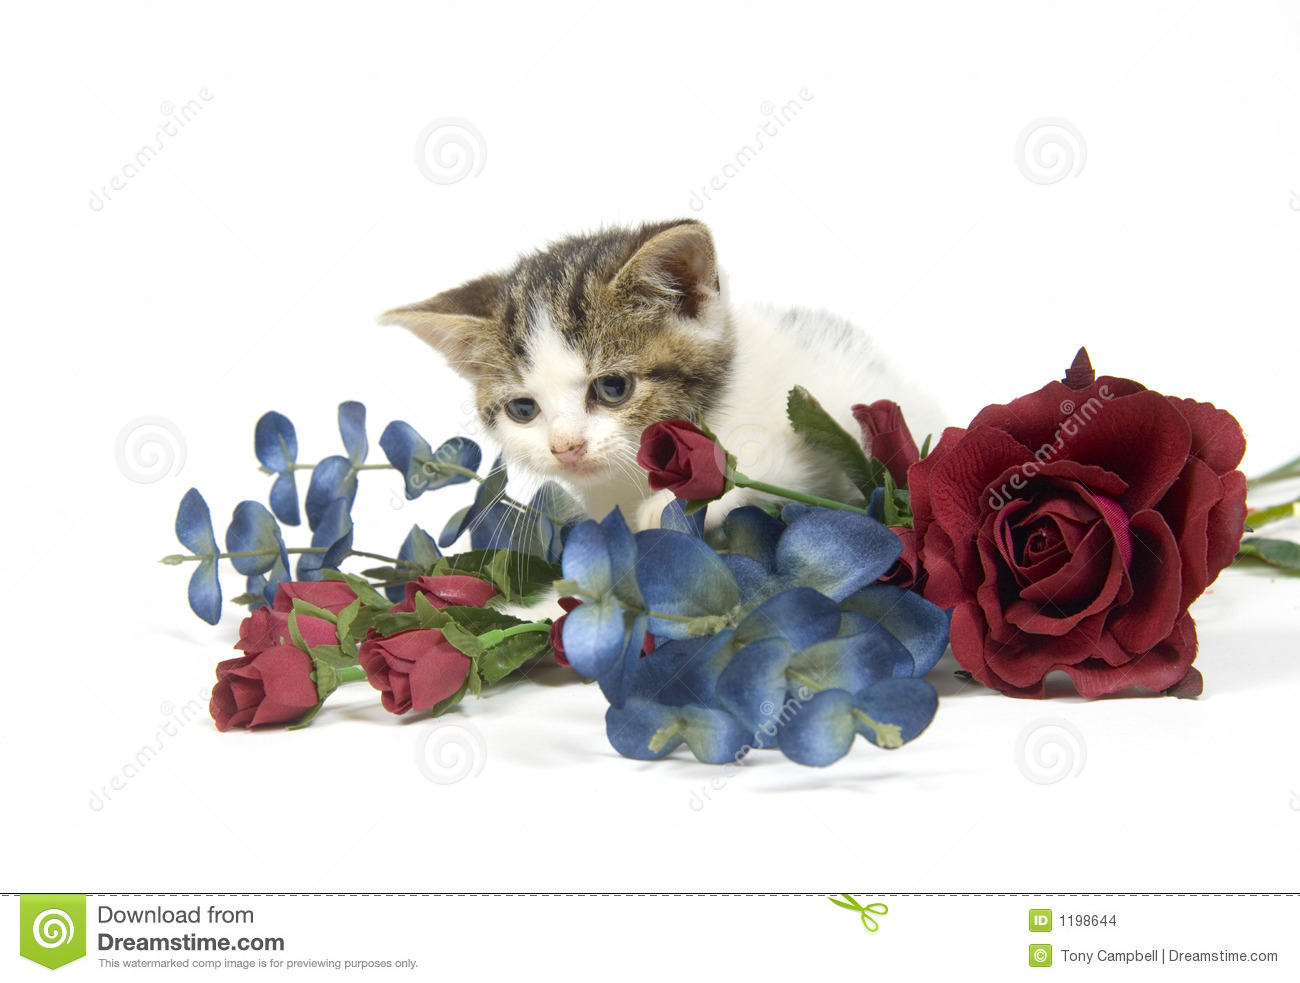 Kitten and flower stock photo. Image of youth, cuddly - 1198644